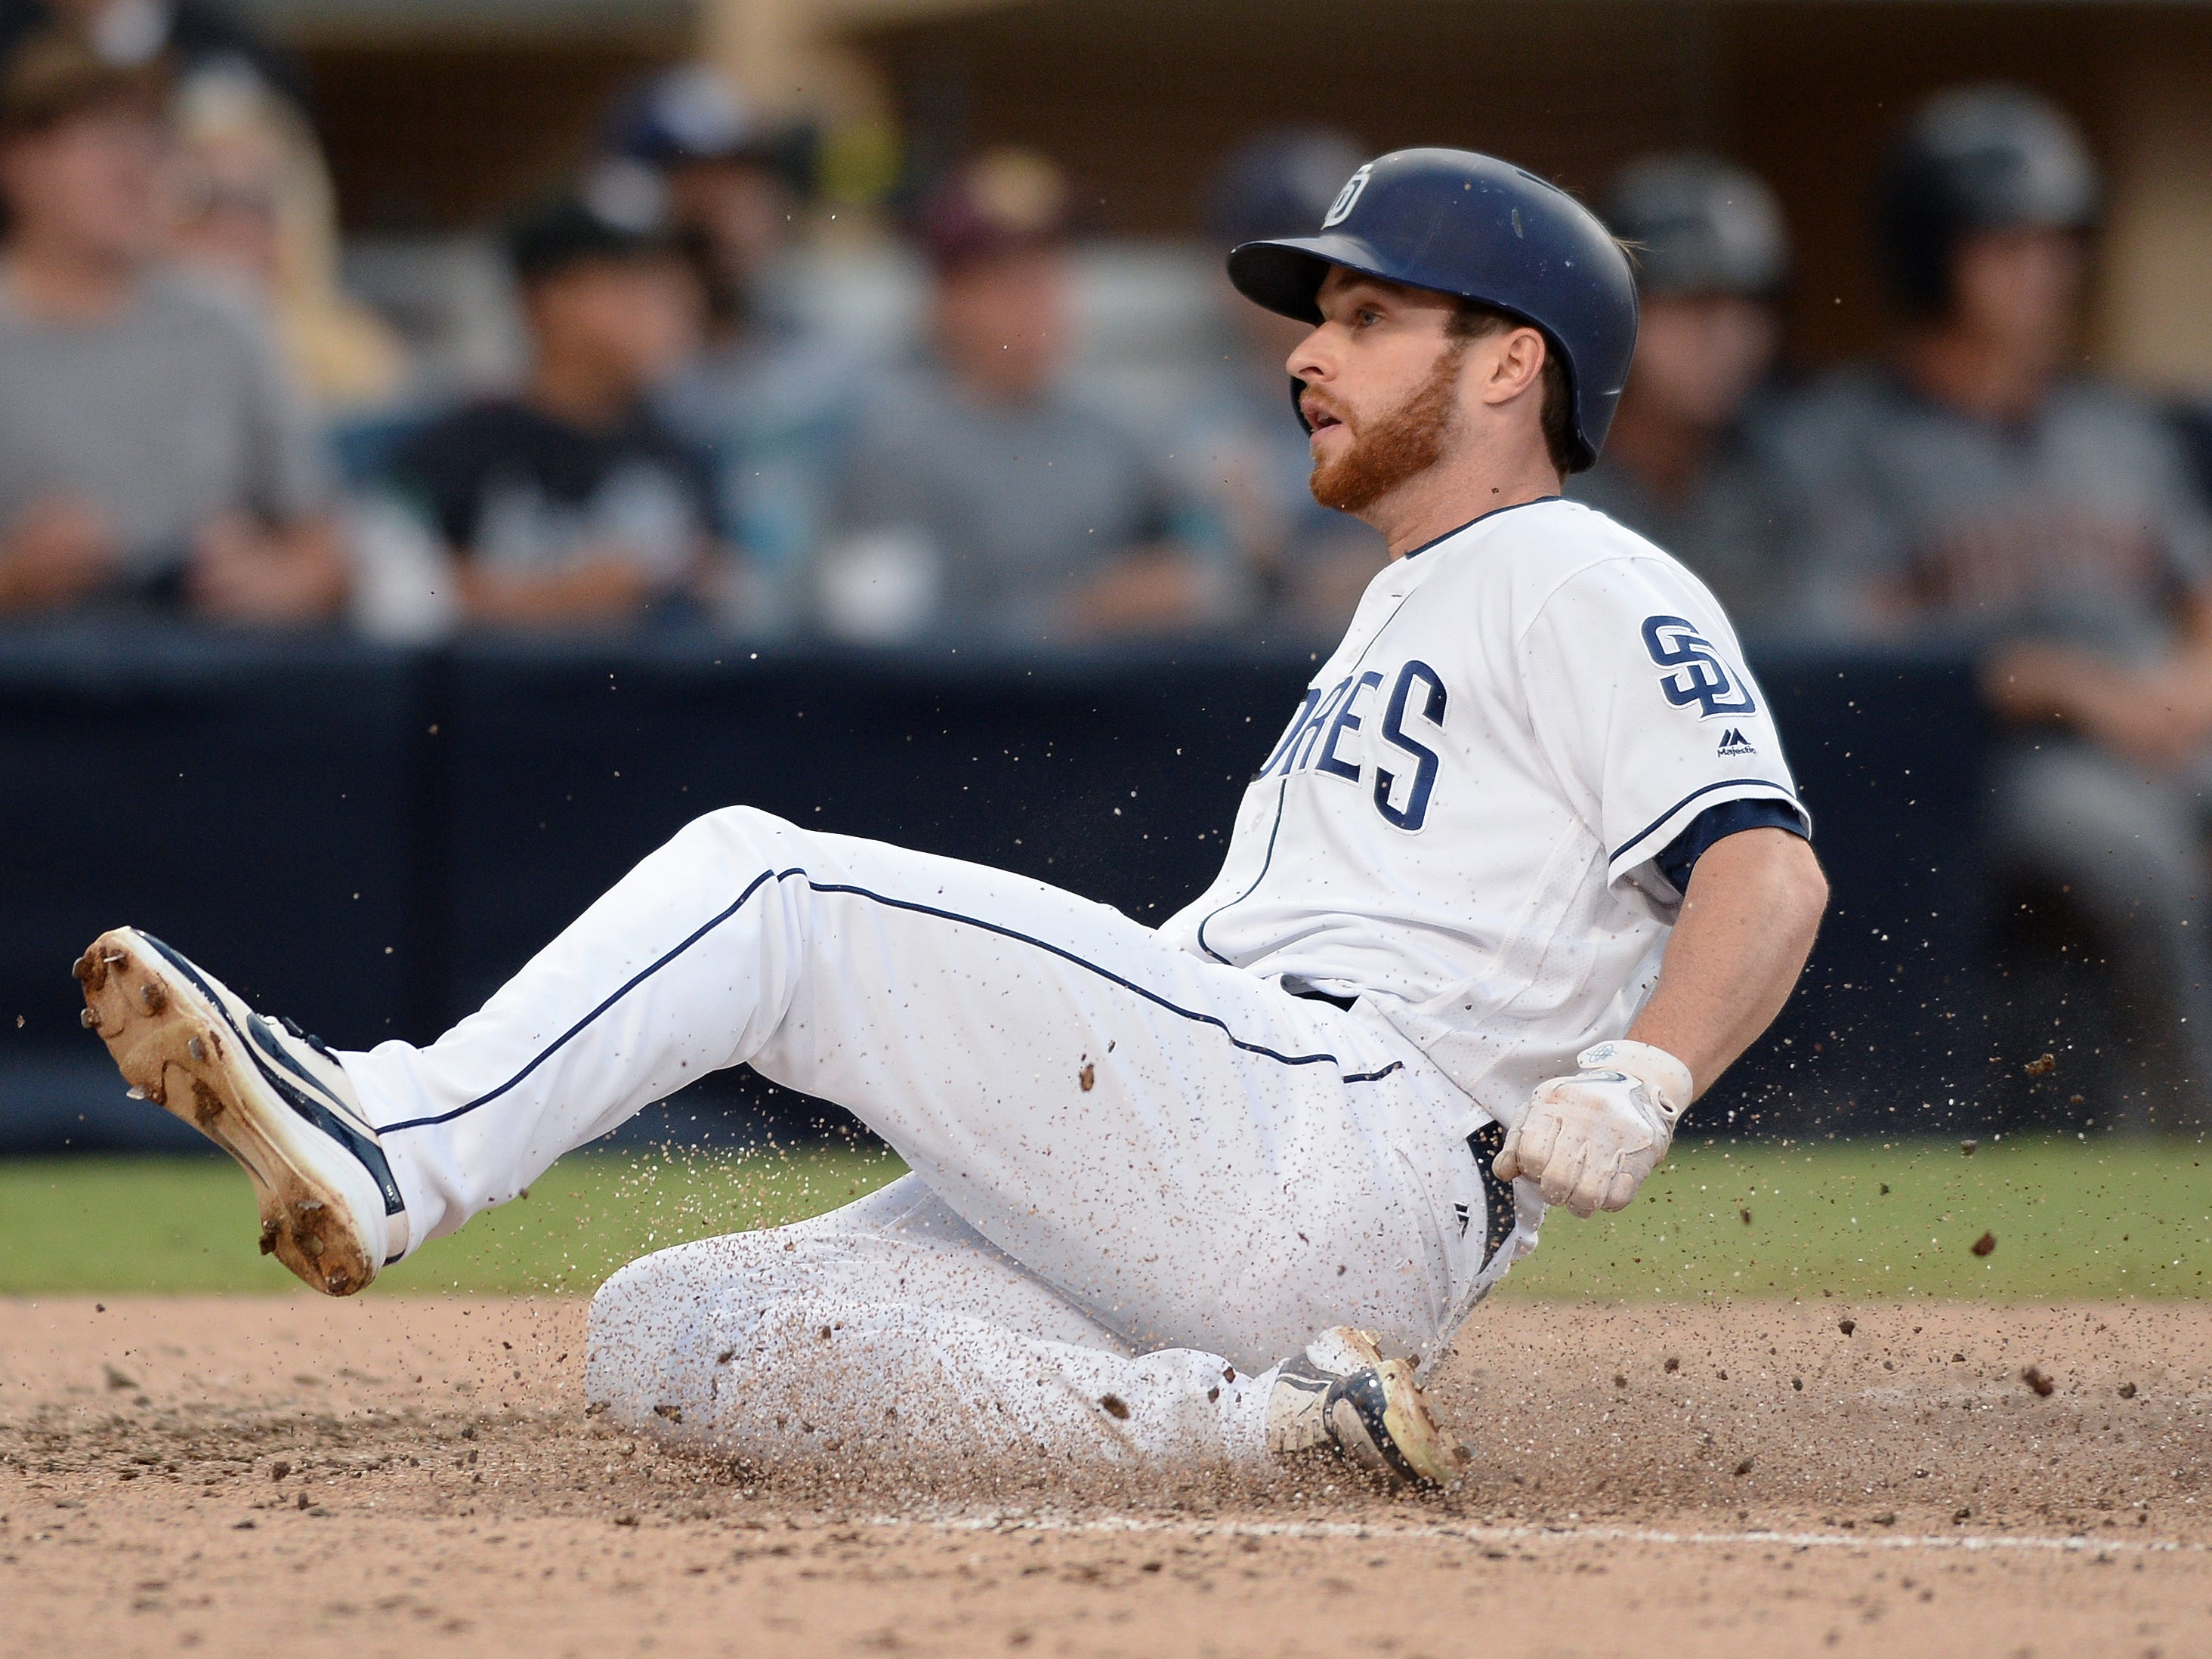 Aug 18, 2018: San Diego Padres second baseman Cory Spangenberg slides home safely on a sacrifice fly by center fielder Manuel Margot (not pictured) during the fourth inning against the Arizona Diamondbacks at Petco Park.